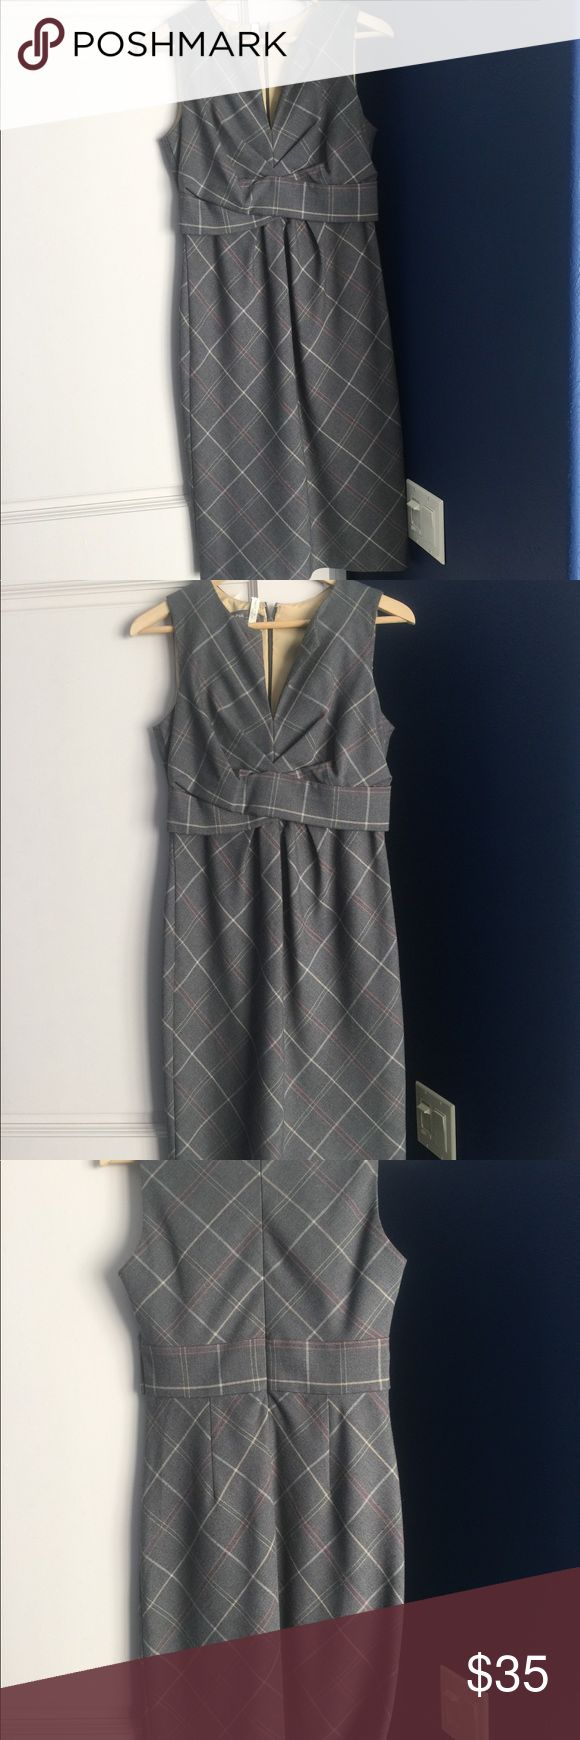 Donna Ricco gray and pink dress.  Hits below knee In new condition Donna Ricco sleeveless dress.  No stains and lined.  Great for business with a jacket.  Nice date night dress also.  Gives you great curves. Donna Ricco Dresses Midi